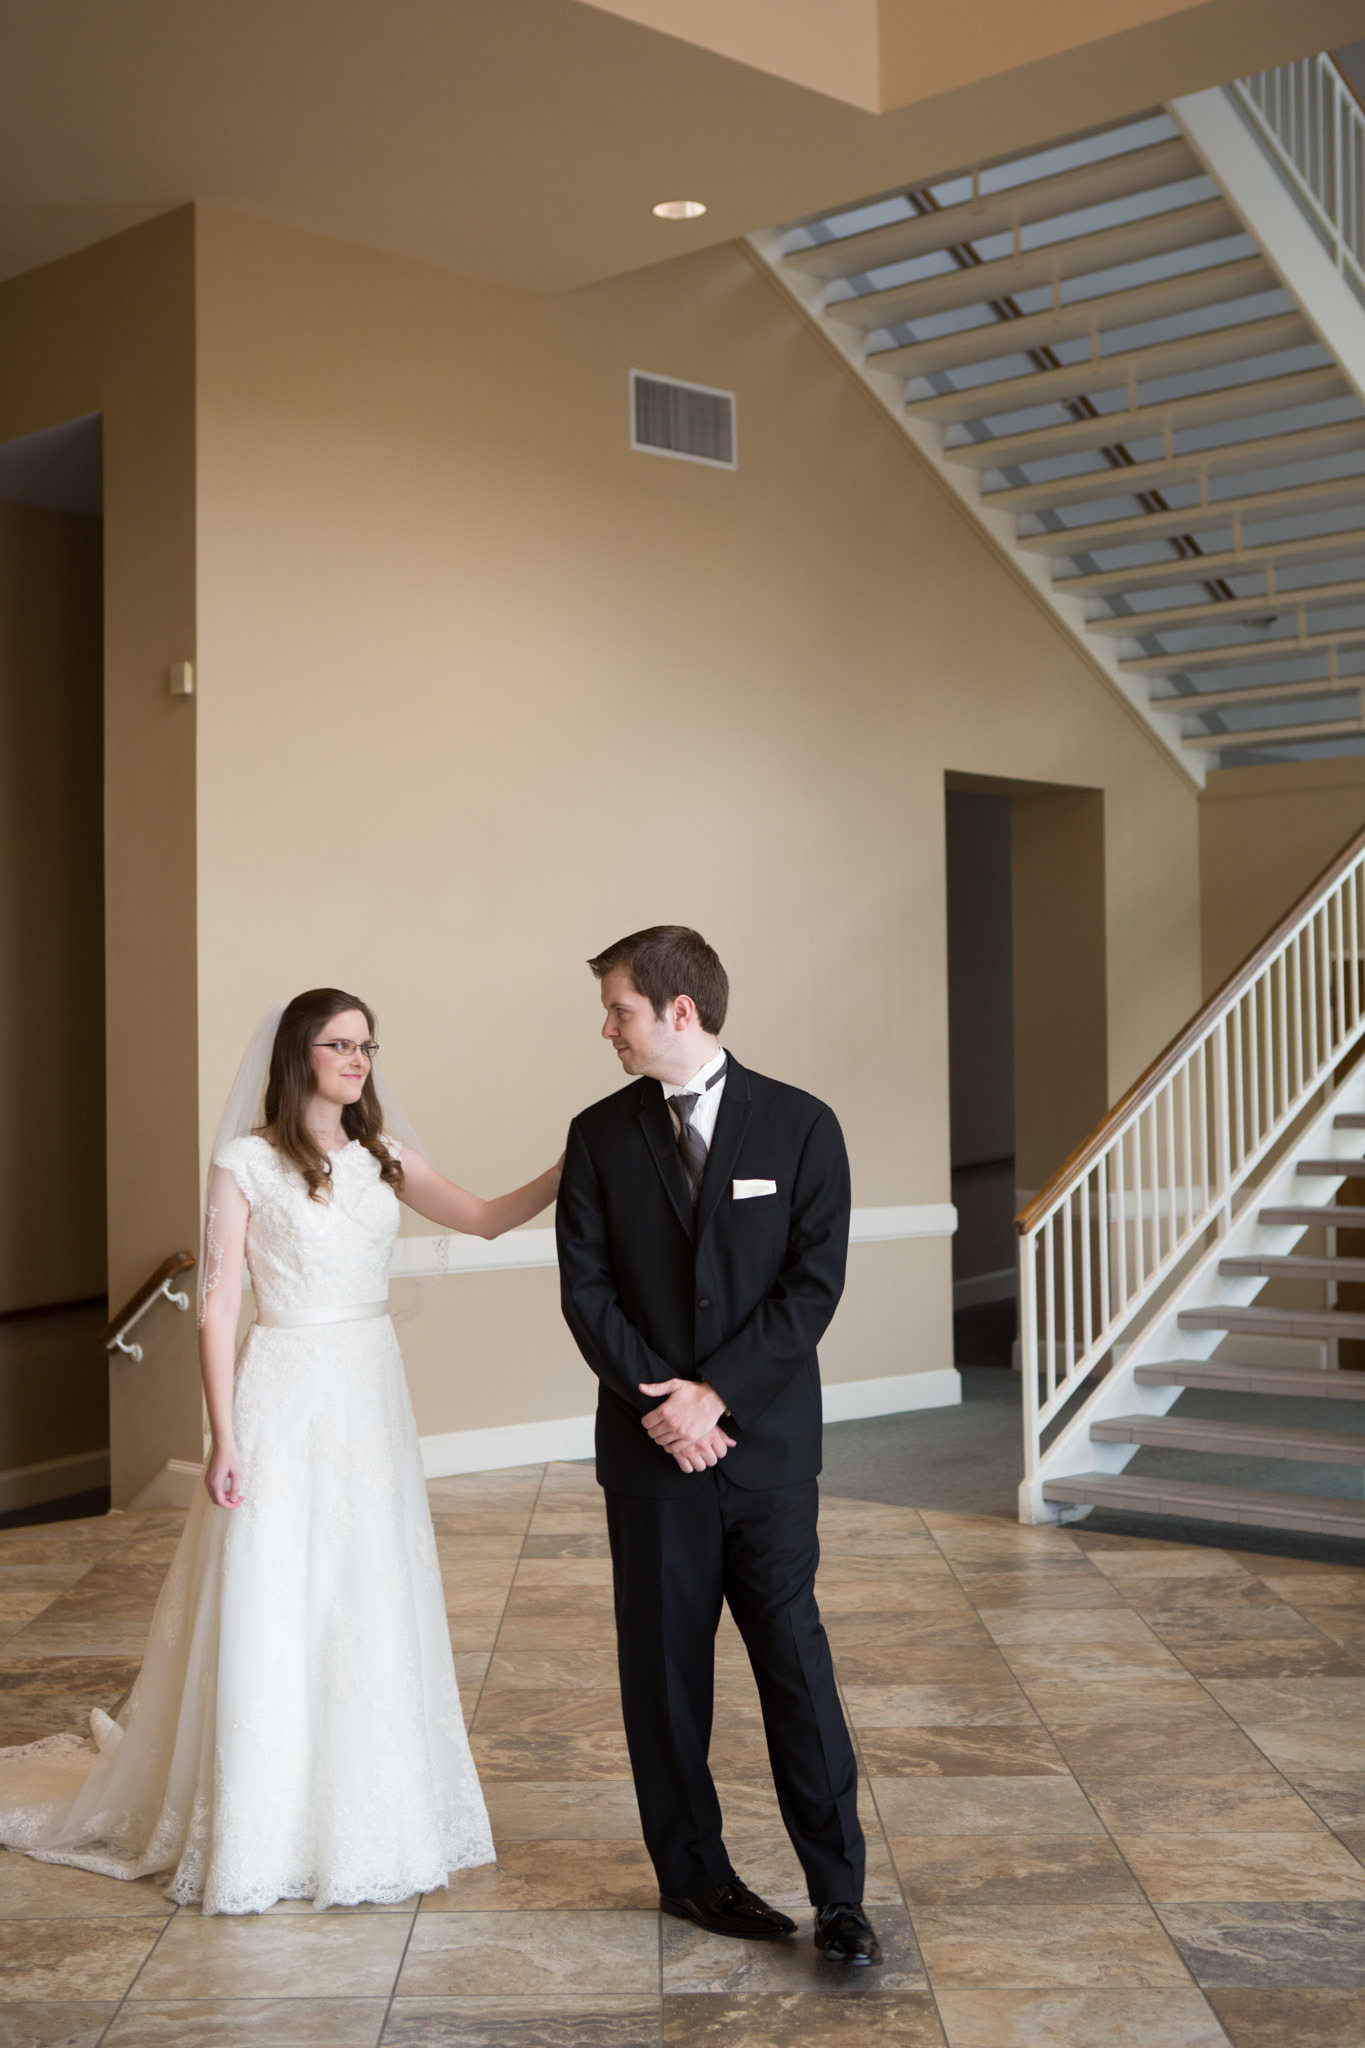 Izehi Photography Dallas Grapevine TX Wedding Photographer-102.jpg